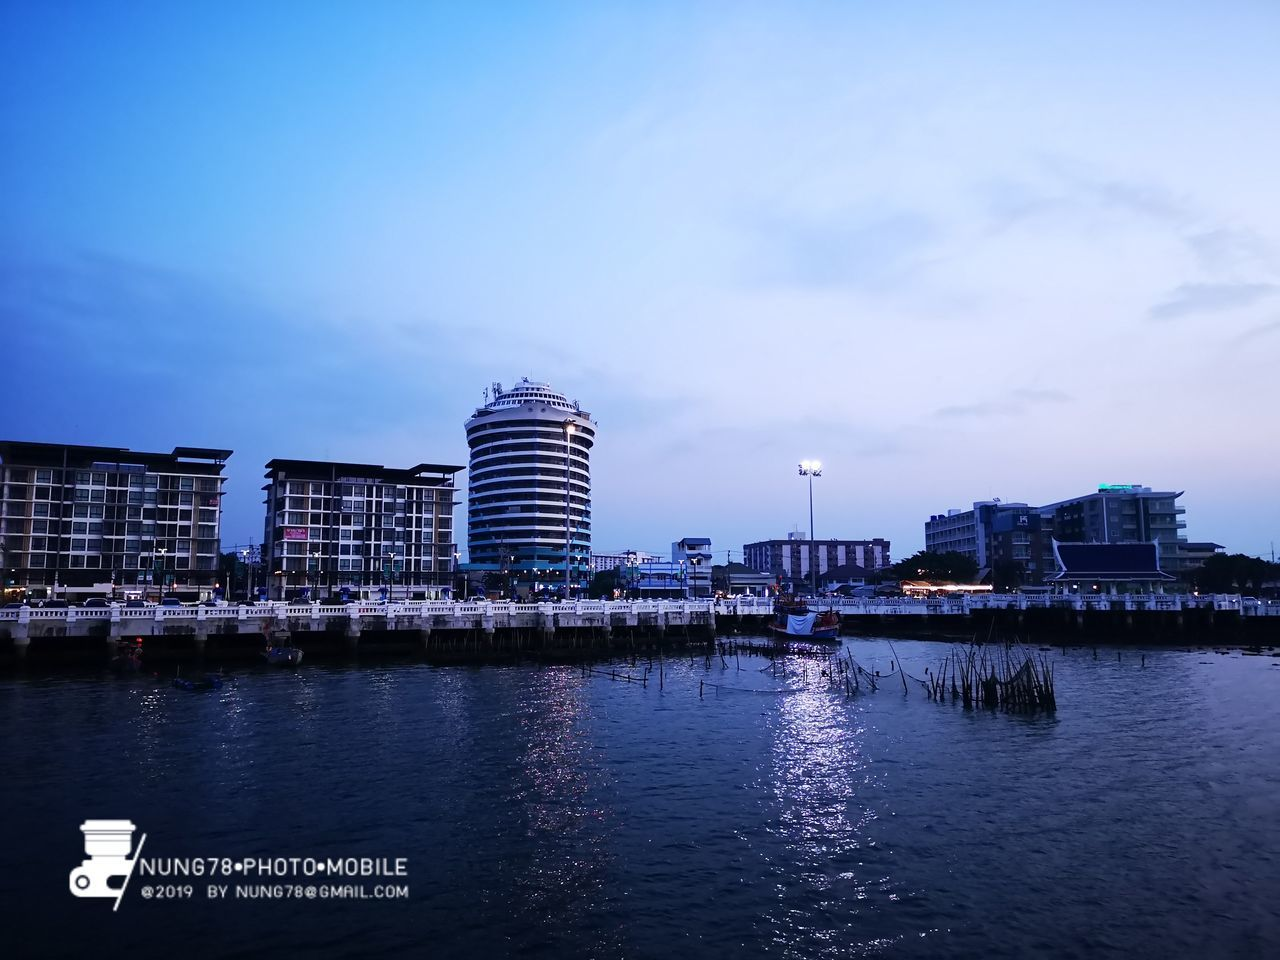 architecture, building exterior, built structure, water, sky, city, waterfront, building, no people, nature, river, transportation, cloud - sky, reflection, nautical vessel, travel destinations, outdoors, dusk, office building exterior, modern, skyscraper, passenger craft